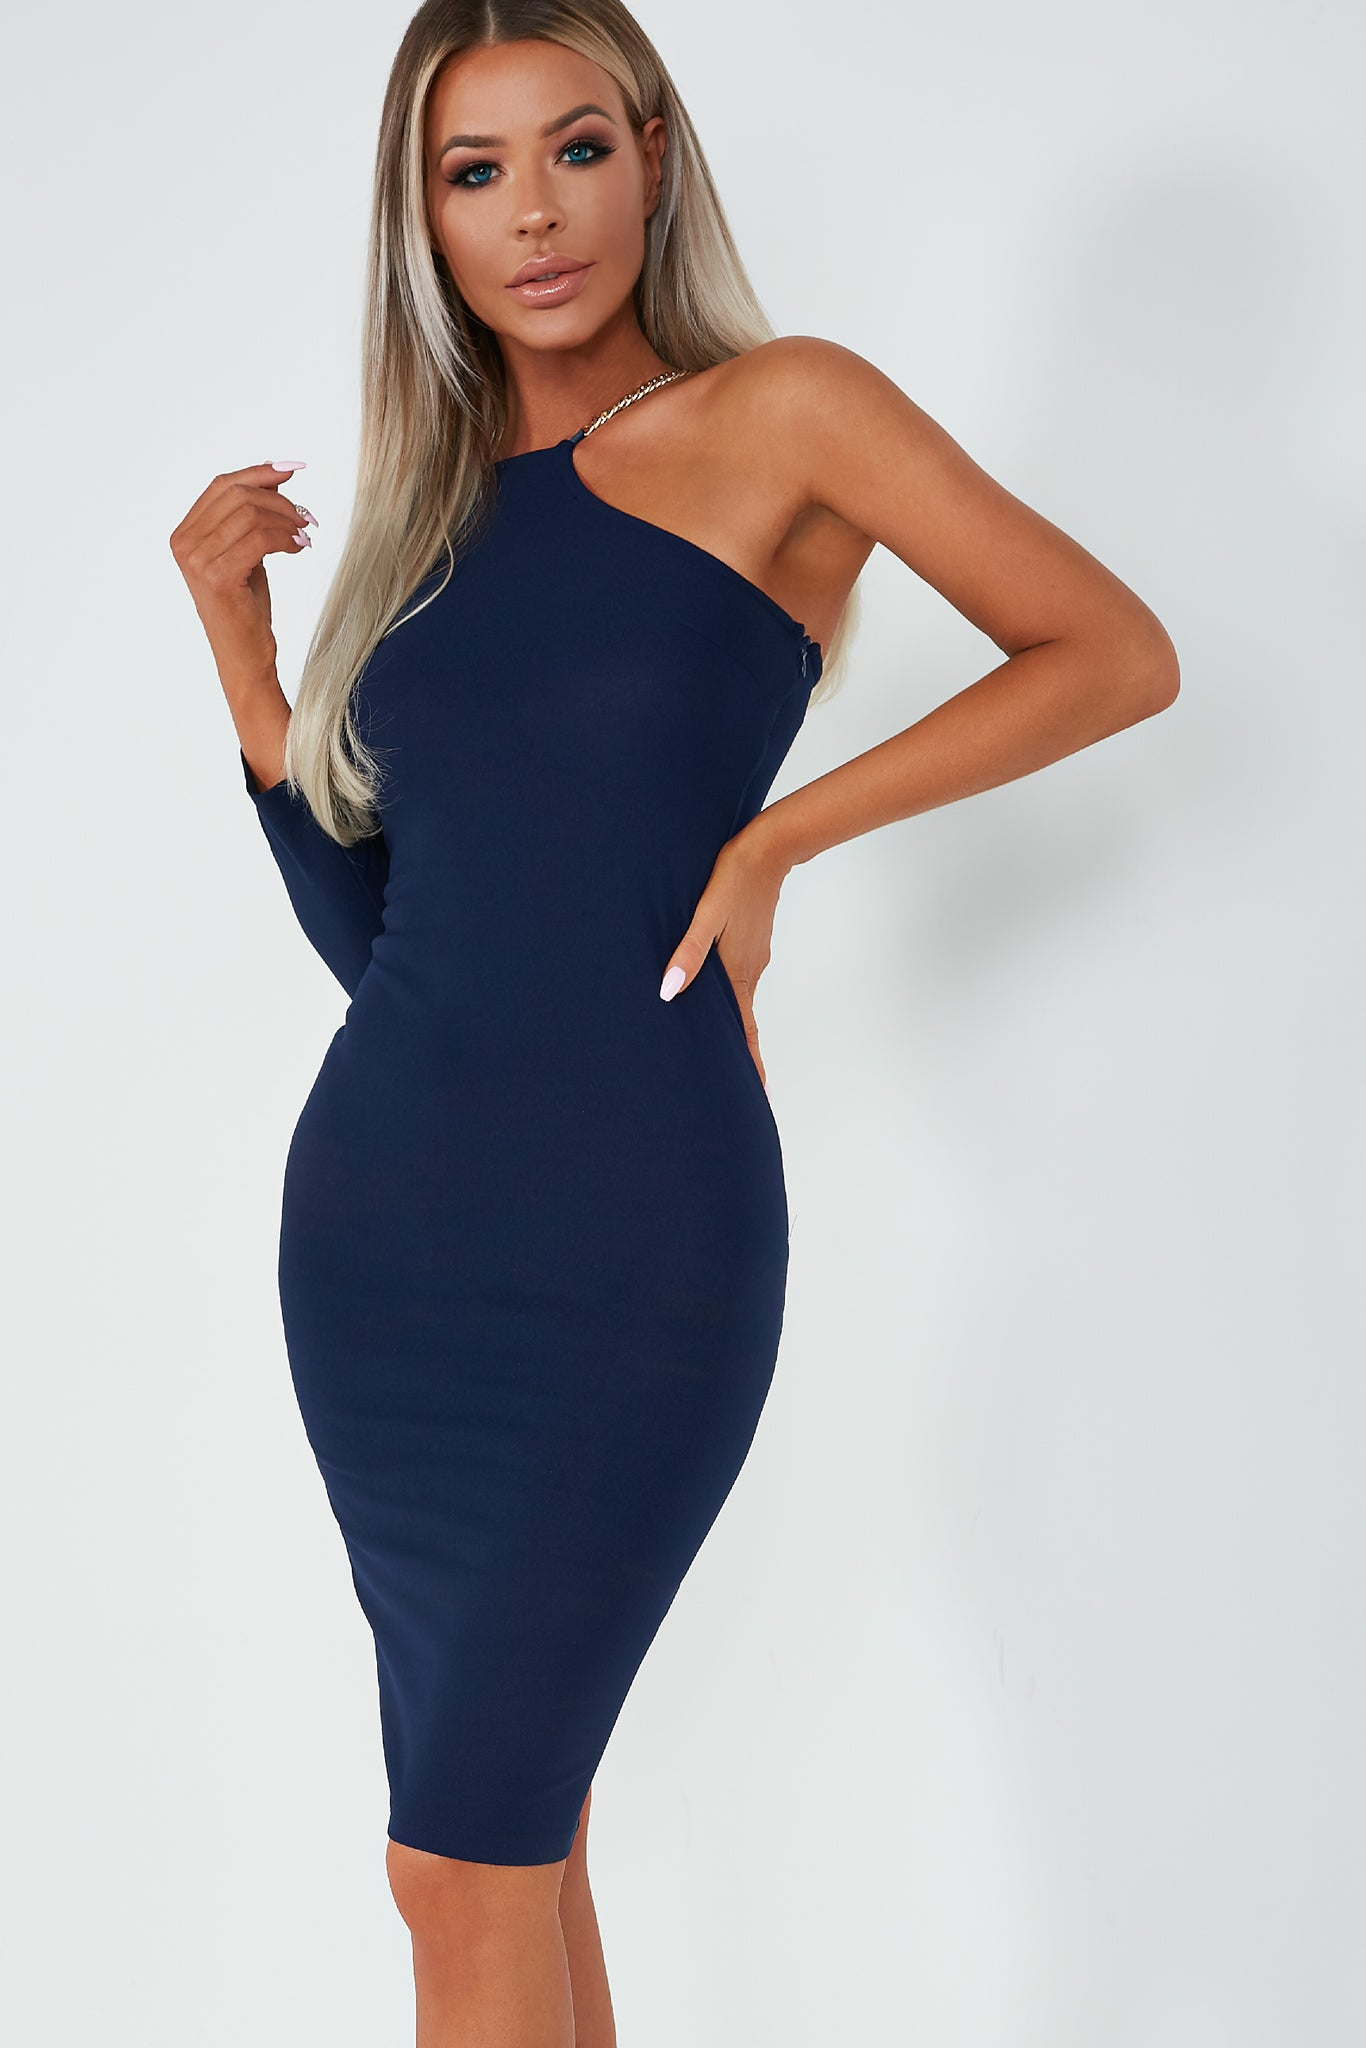 Quenby Navy One Sleeve Midi Dress. €29.99. Previous d51eb575857b